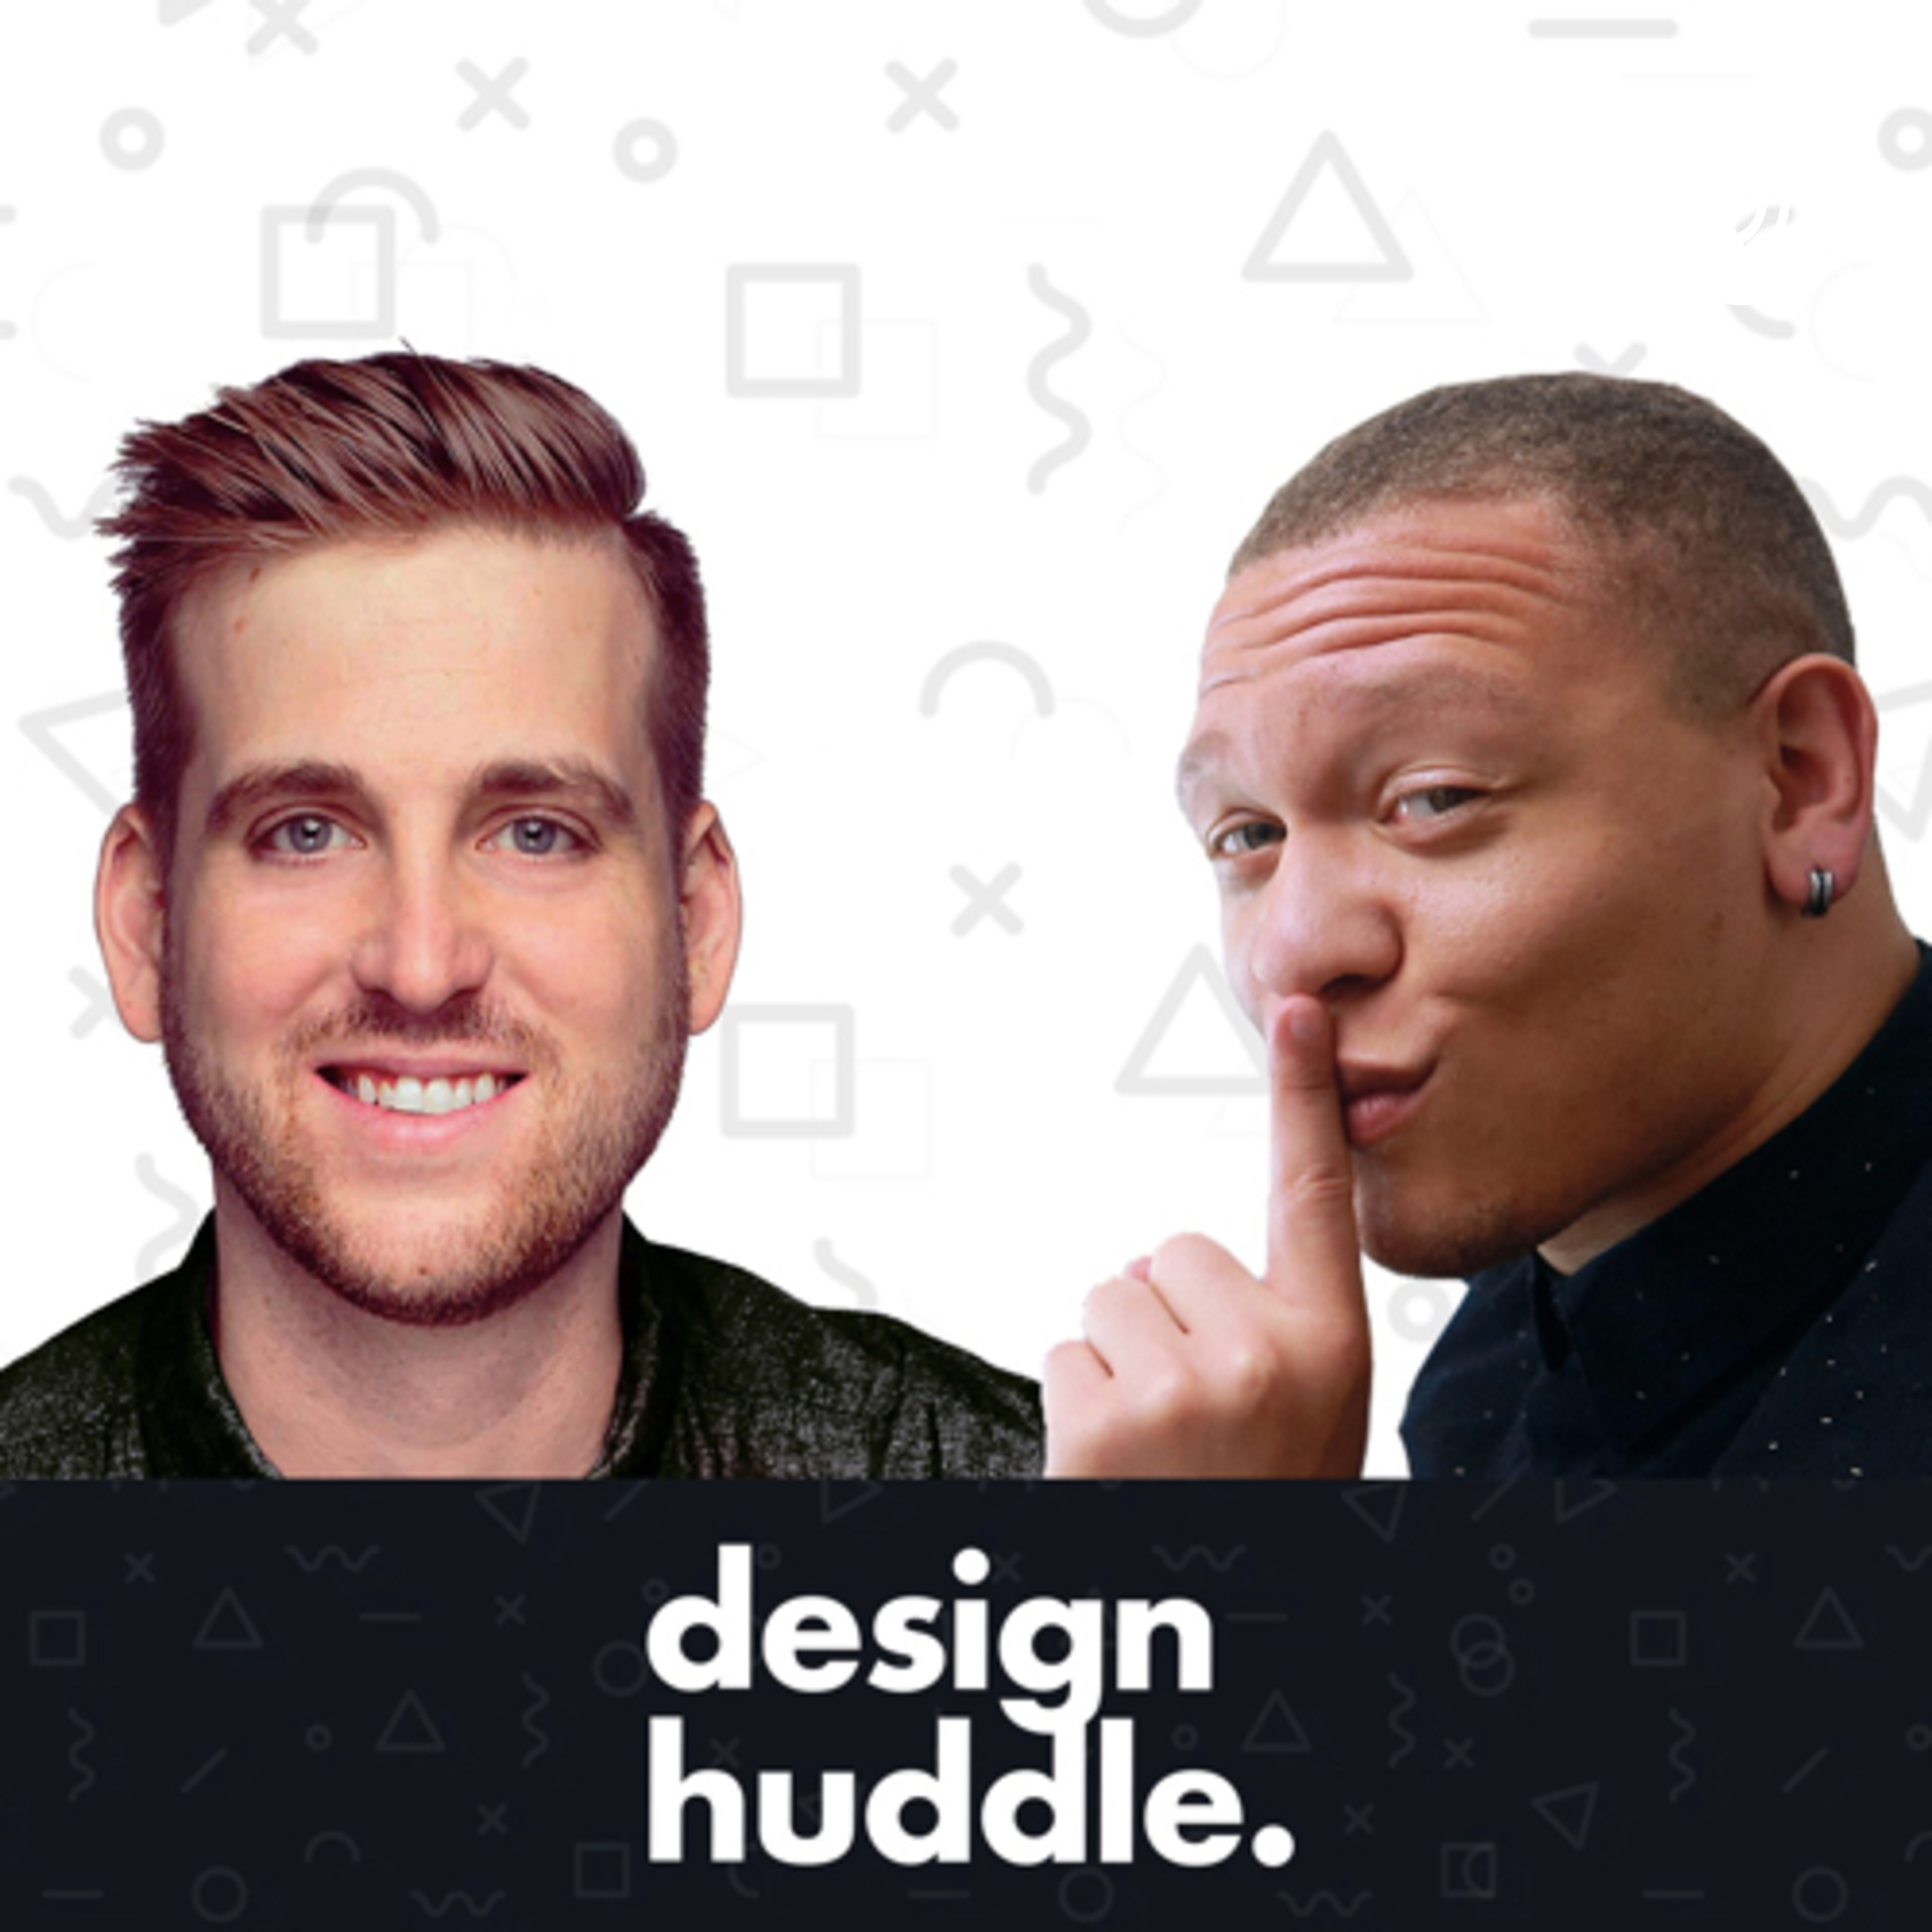 A Year In Review & Whats New For Design Huddle In 2020